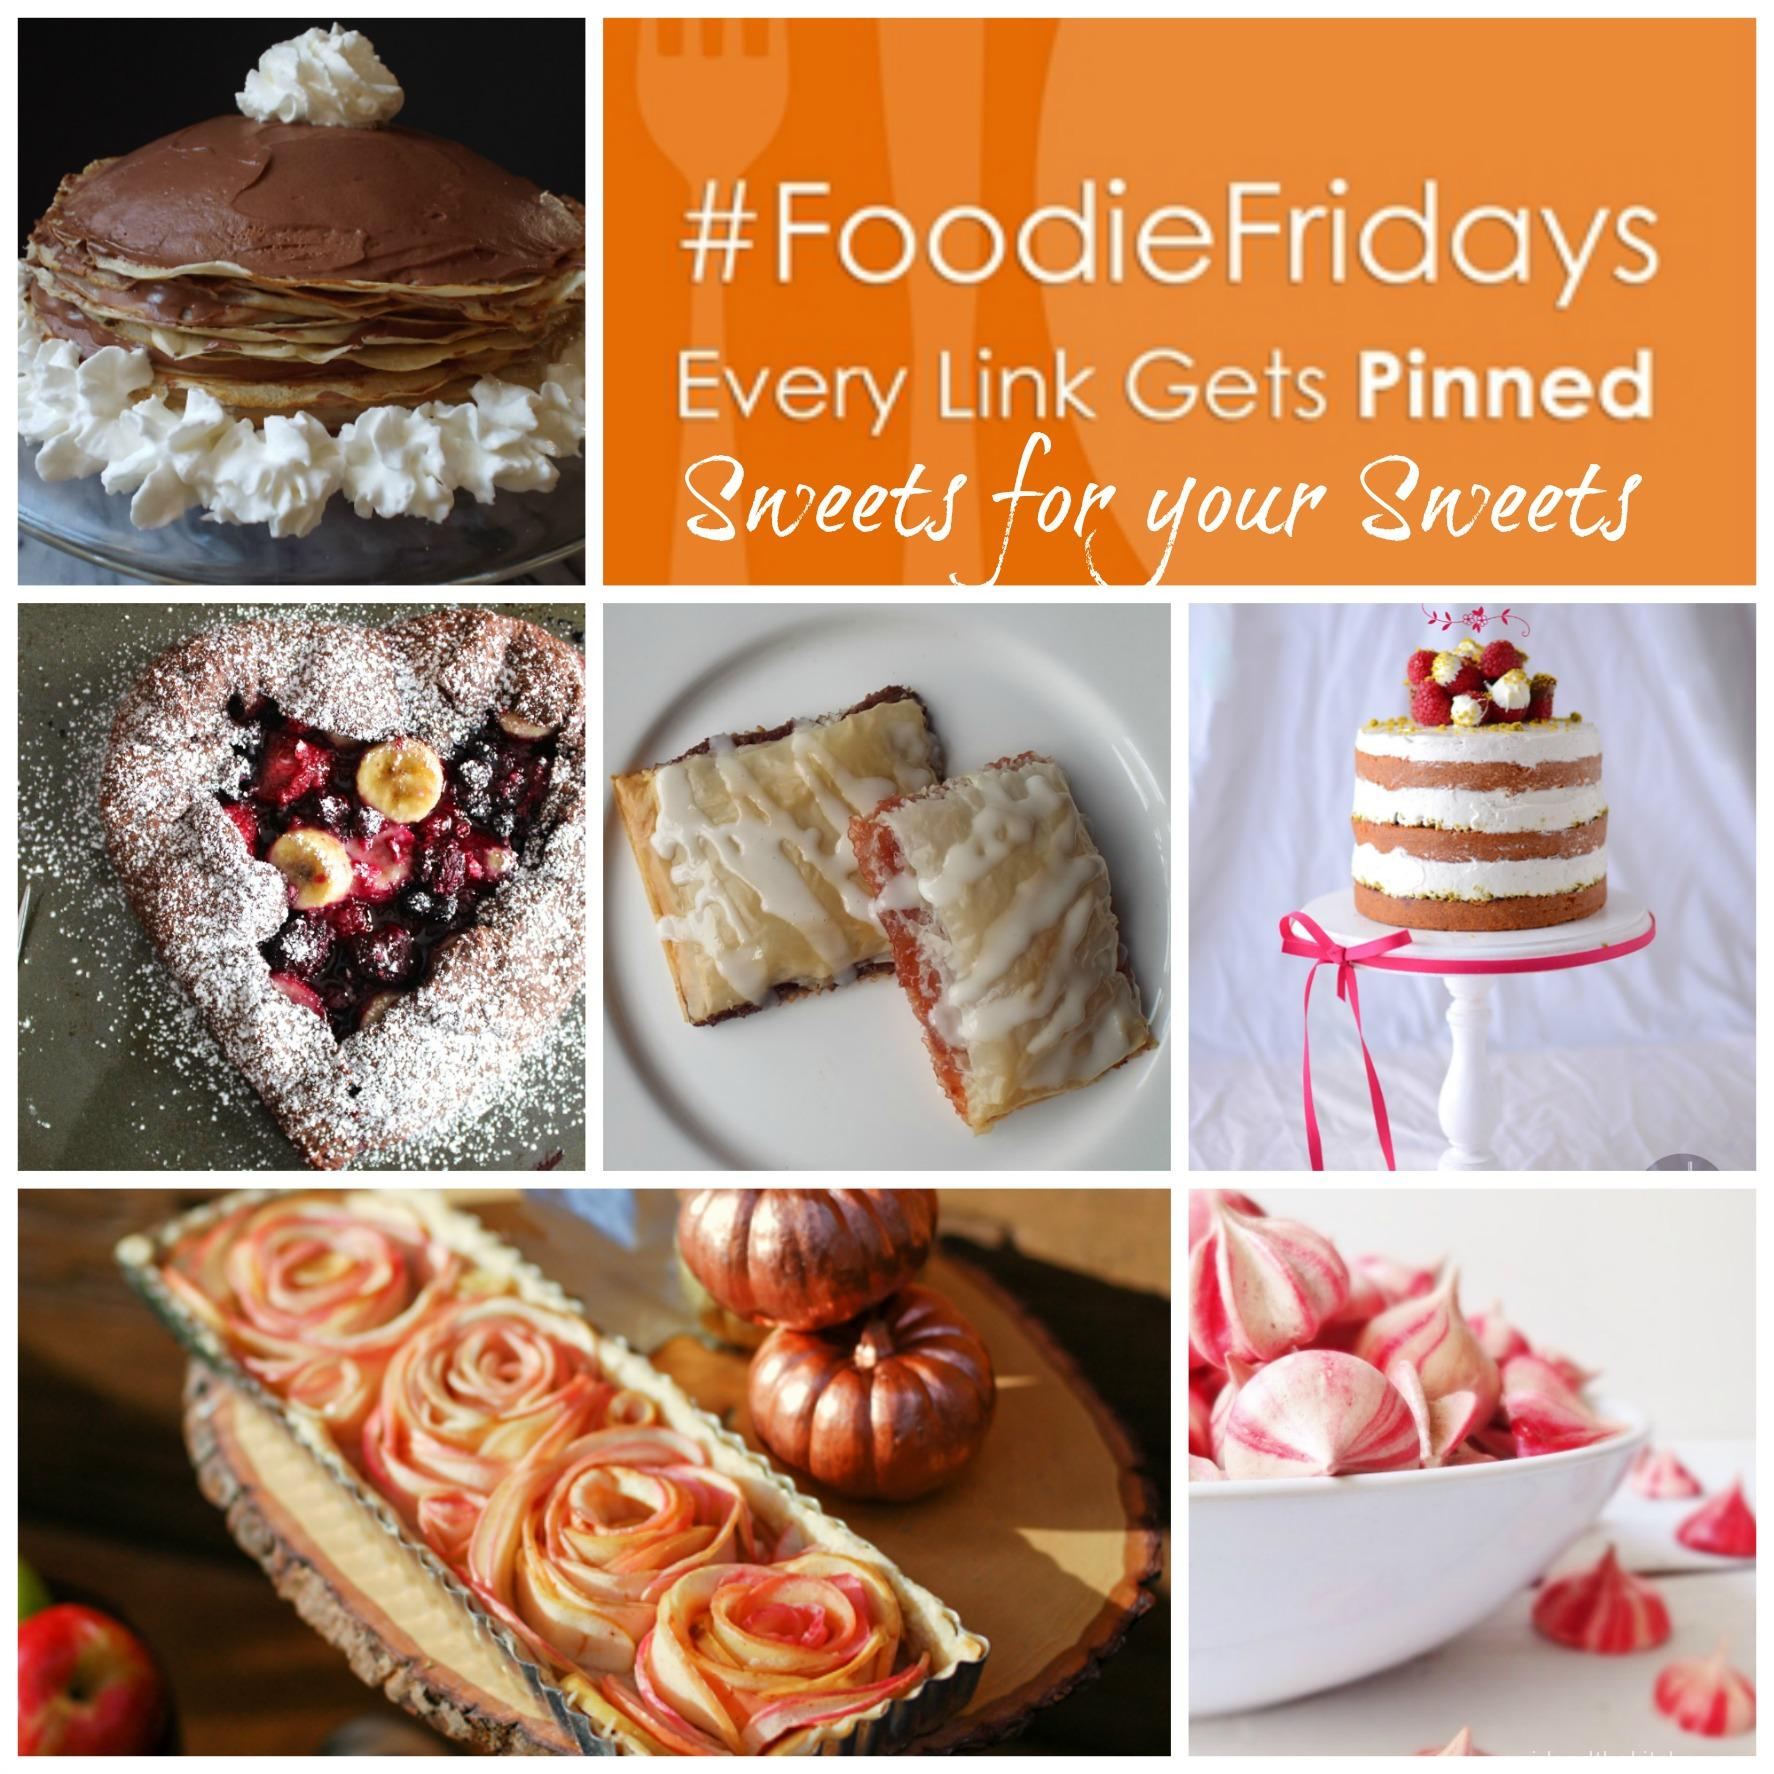 Foodie Friday Sweets for your Sweets.  girlandthekitchen.com